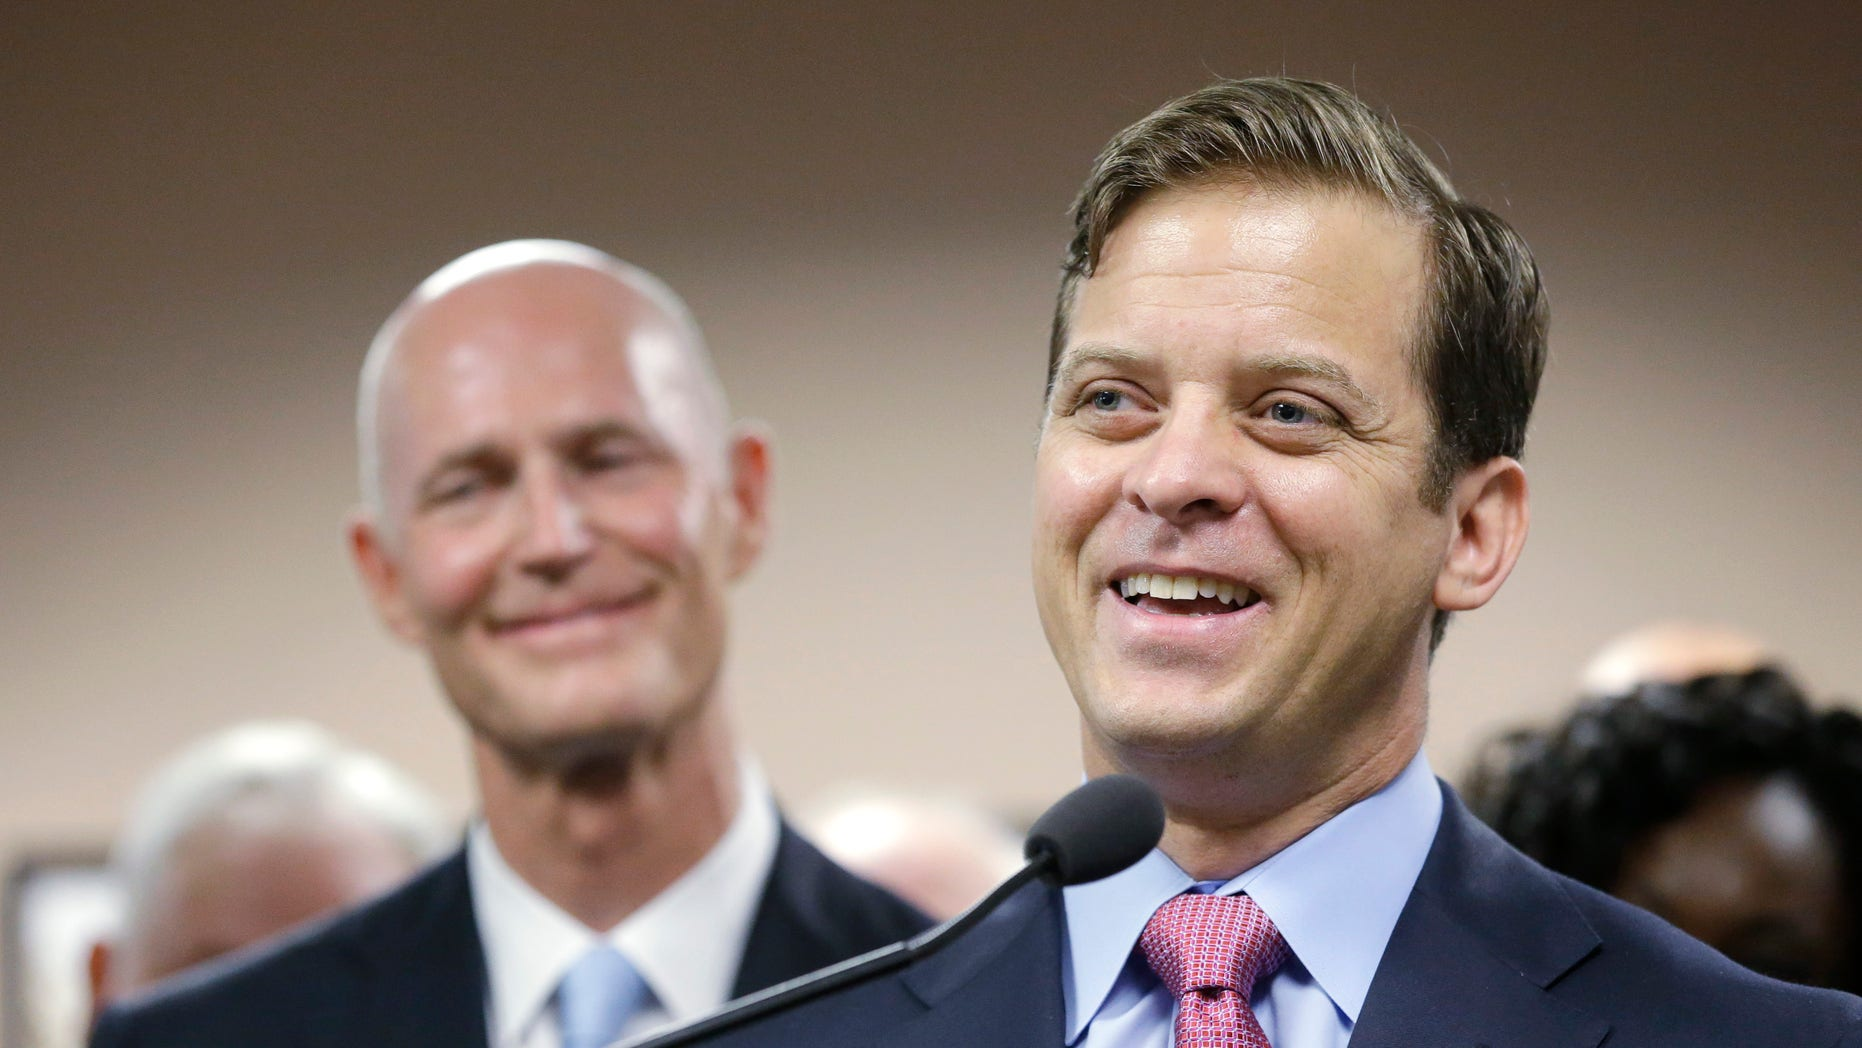 Carlos Lopez-Cantera during a news conference Tuesday, Jan. 14, 2014 in Miami.